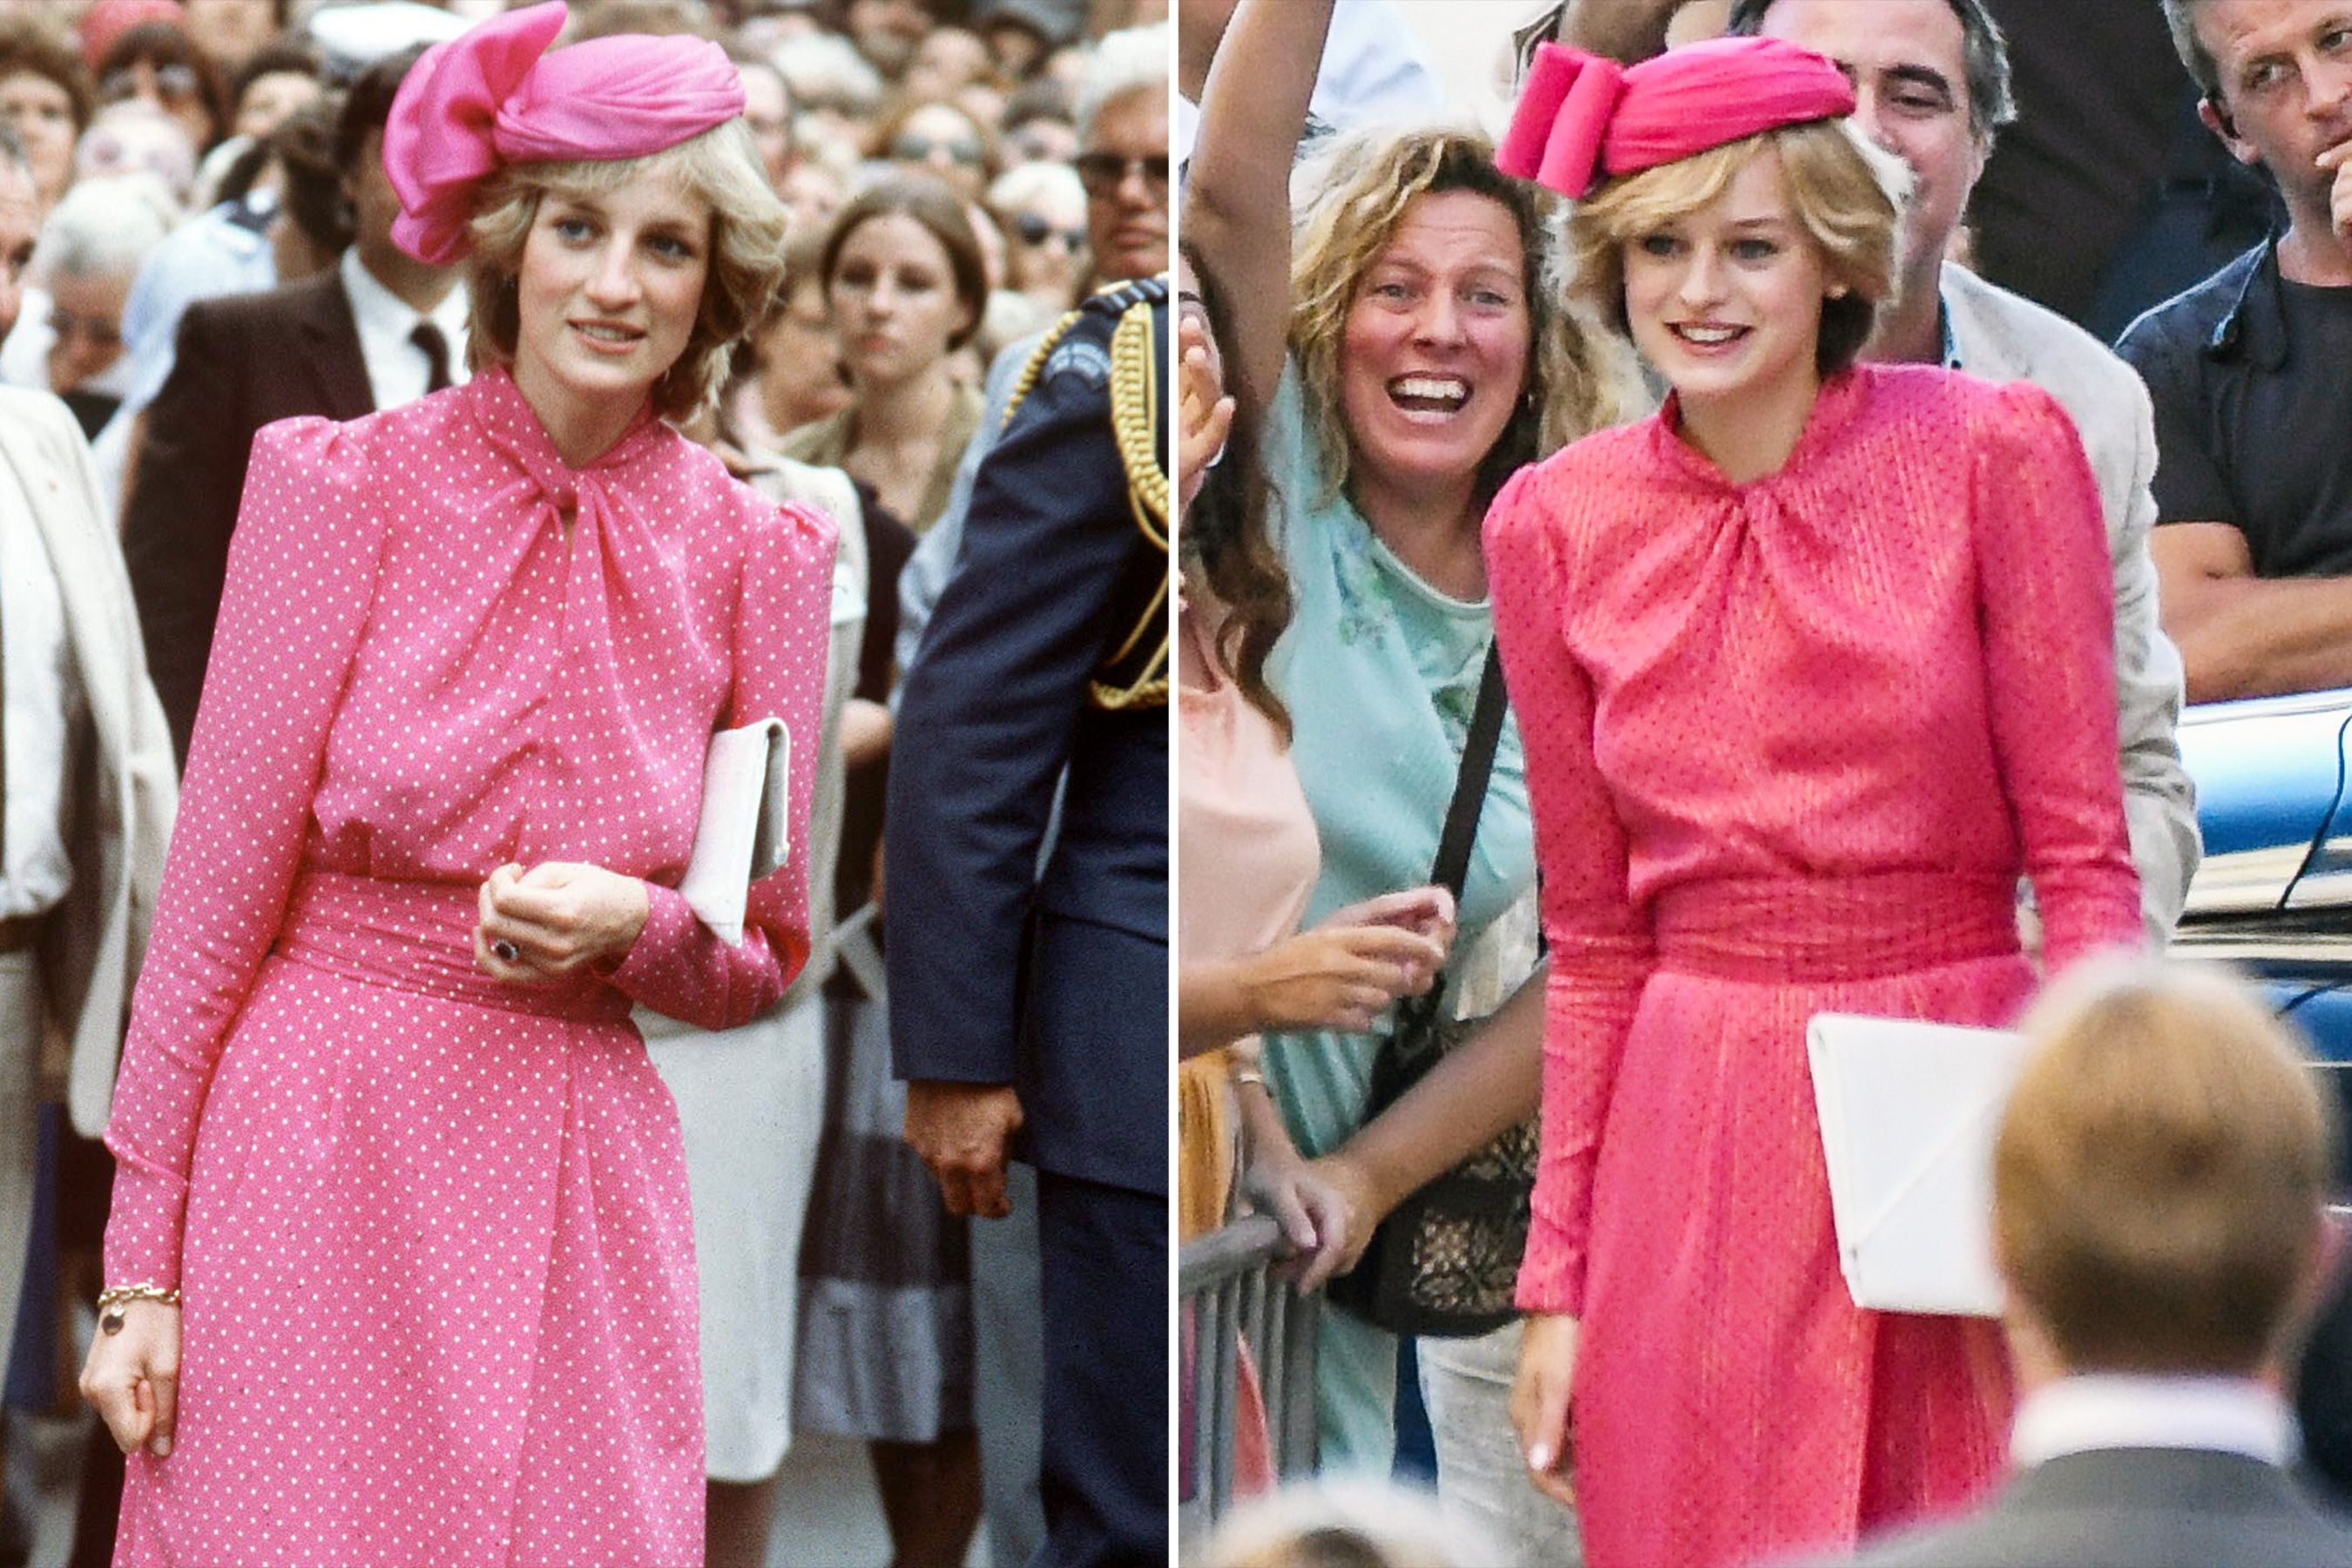 Royal Double Take Emma Corrin Channels Princess Diana In Pink Polka Dots On Set Of The Crown Princess Diana Princess Diana Pictures The Crown Season